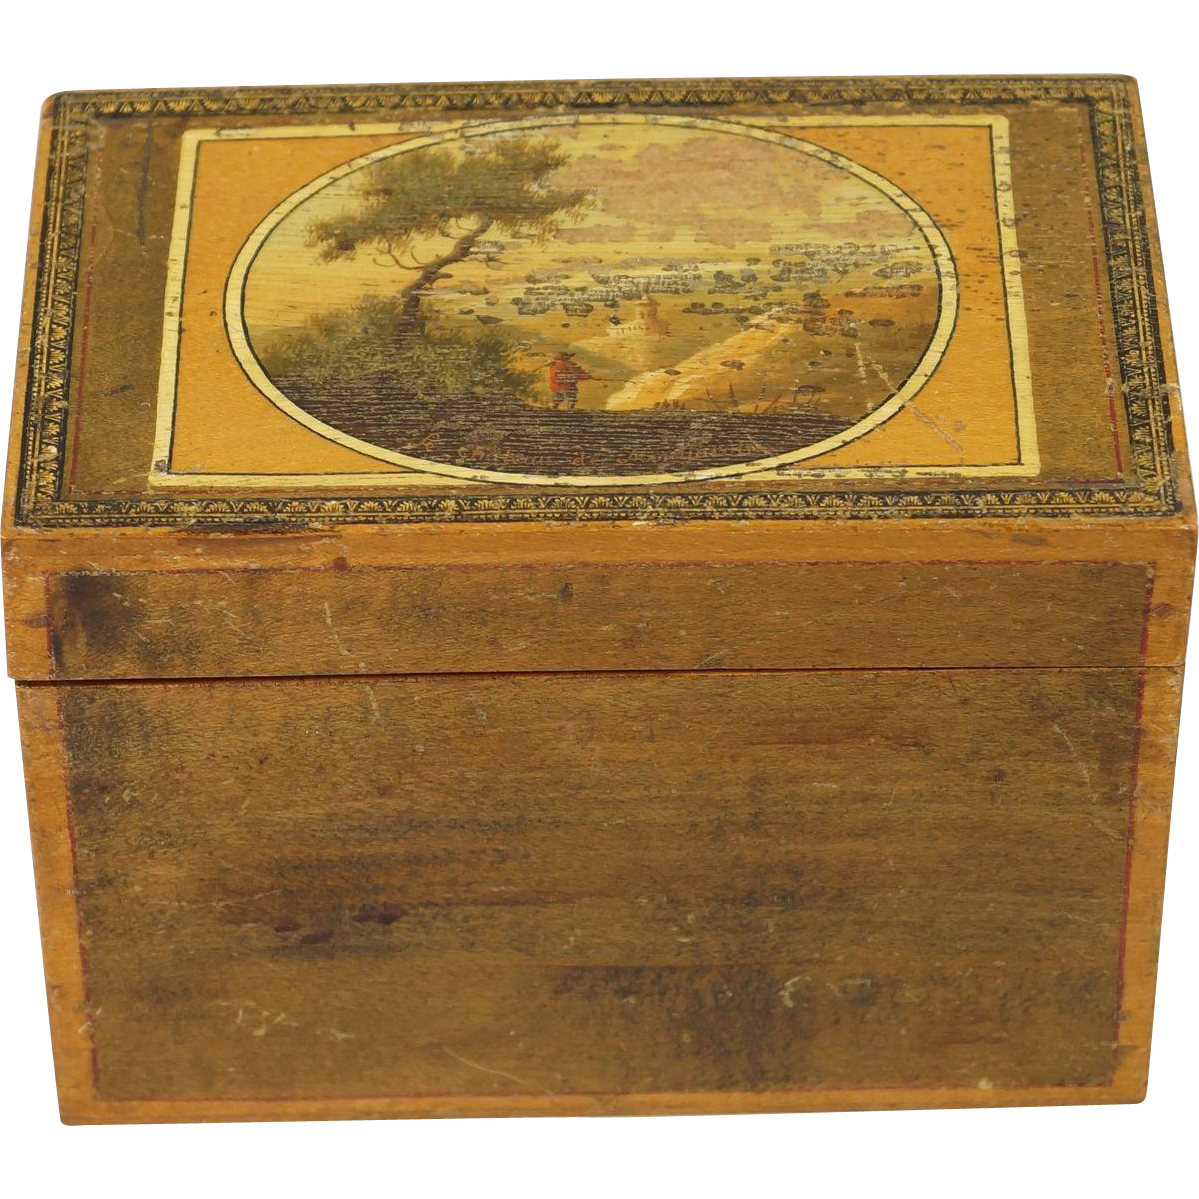 Antique Early 19th century Miniature Sewing Box Grand Tour Circa 1815